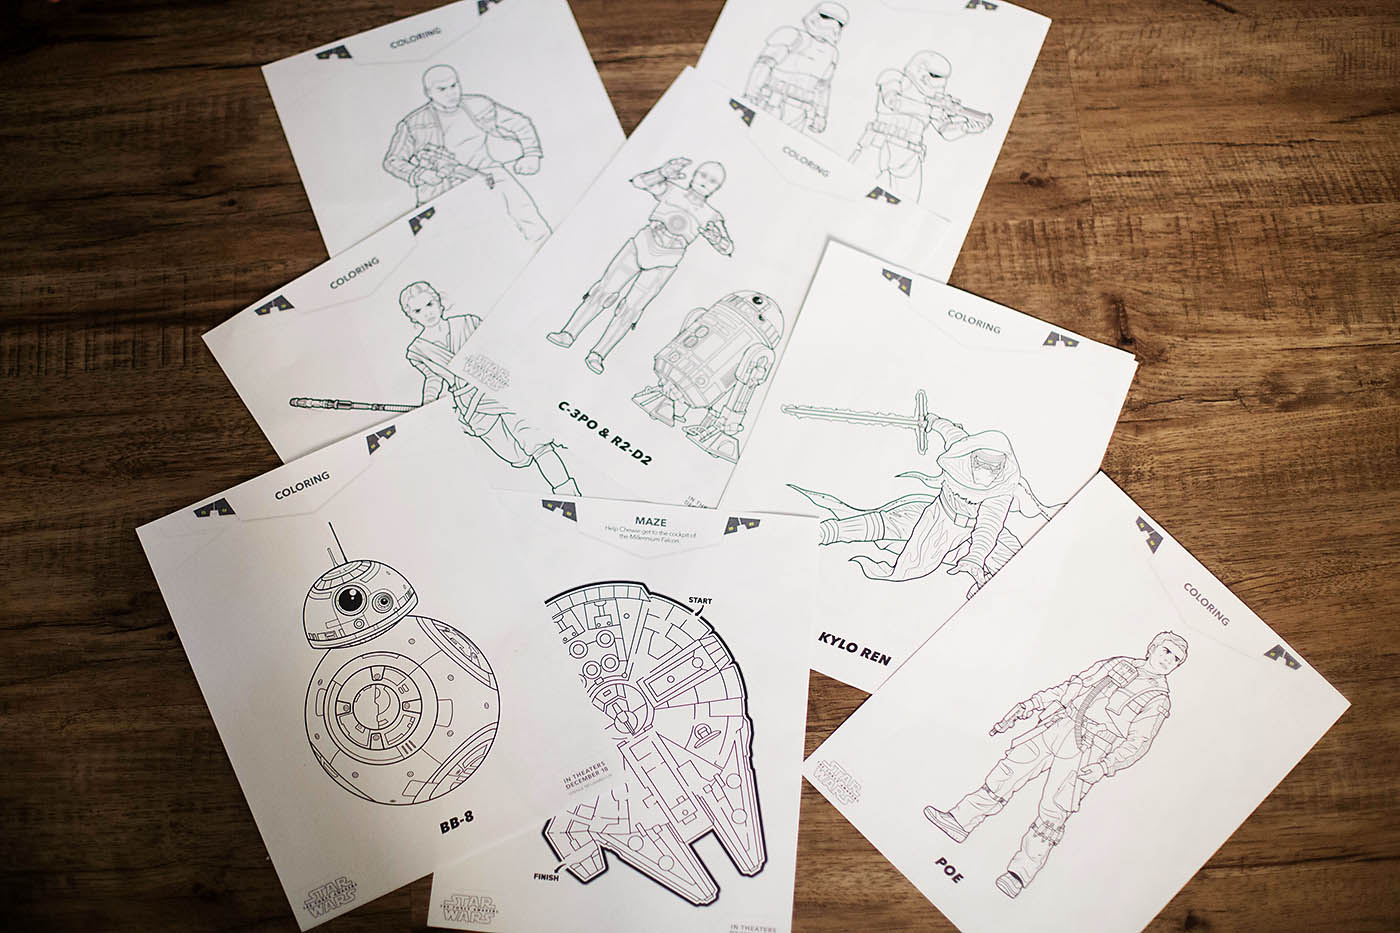 STAR WARS: THE FORCE AWAKENS fun family printables - includes coloring pages, a maze, matching game, bookmark and door hanger!